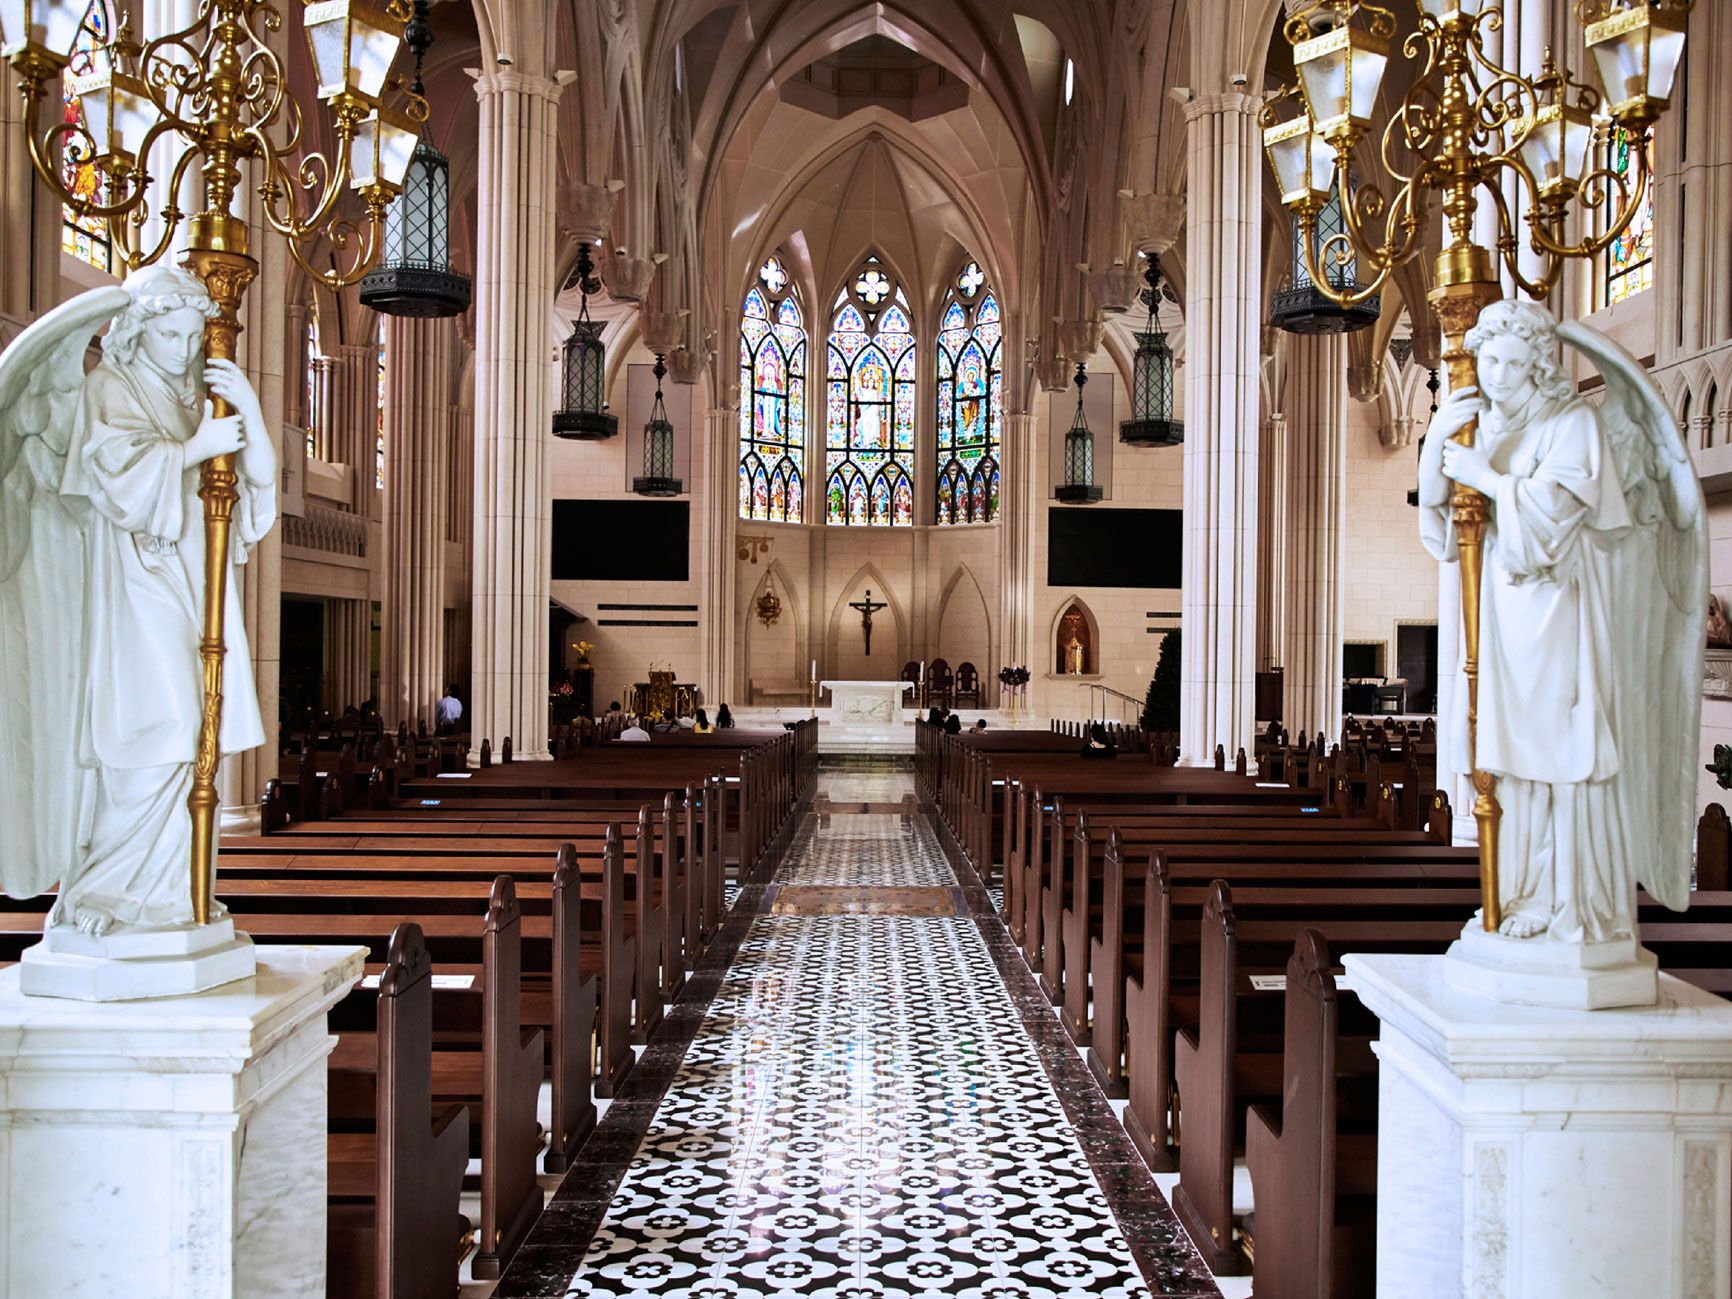 Church of St. Alphonsus or more popularly known as Novena